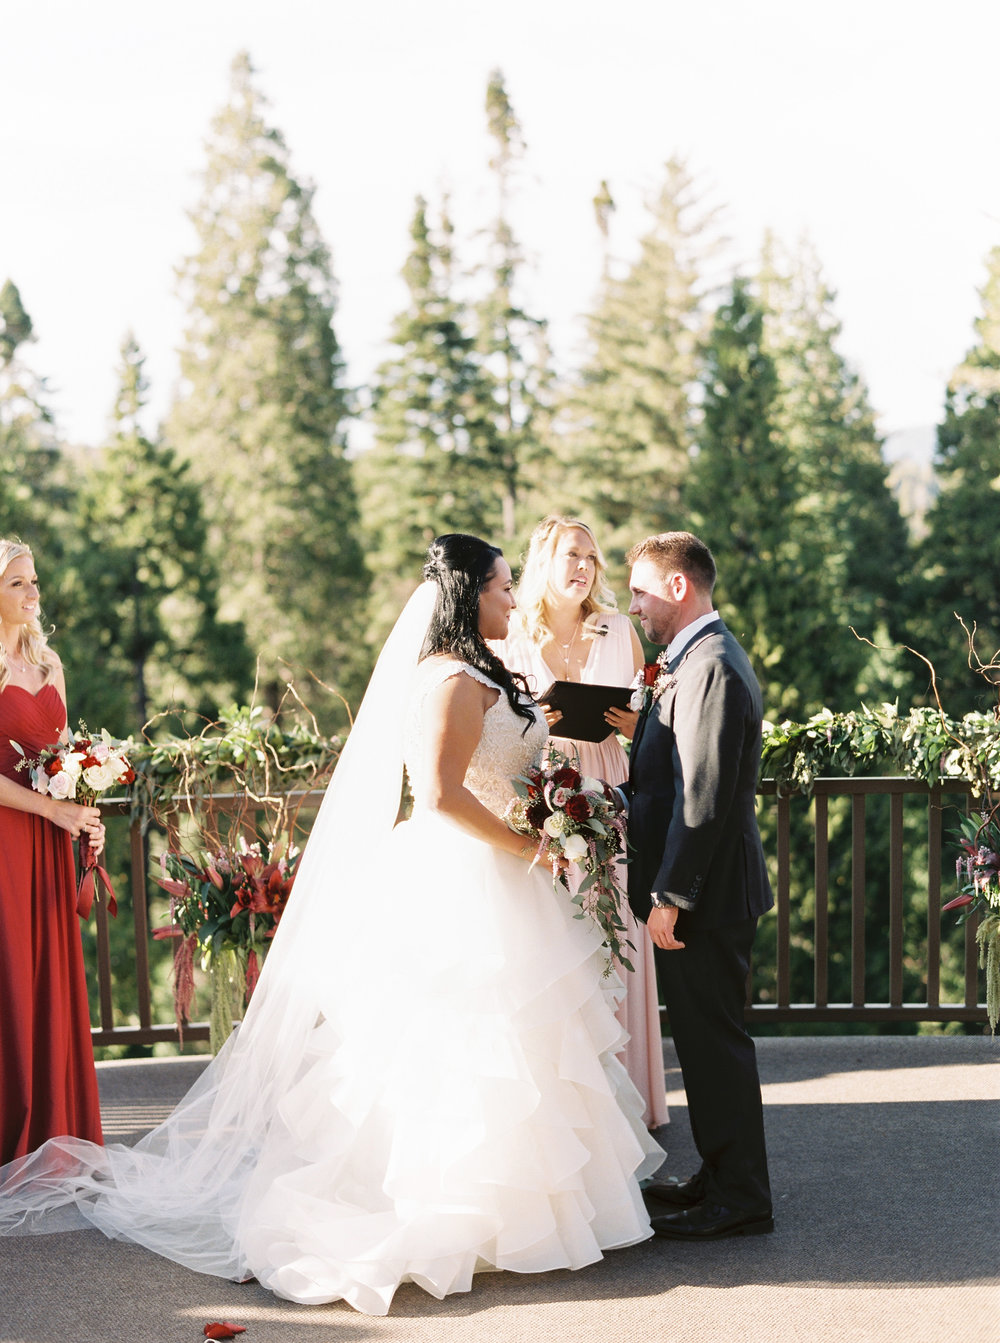 Tenaya-lodge-wedding-at-yosemite-national-park-california-75.jpg